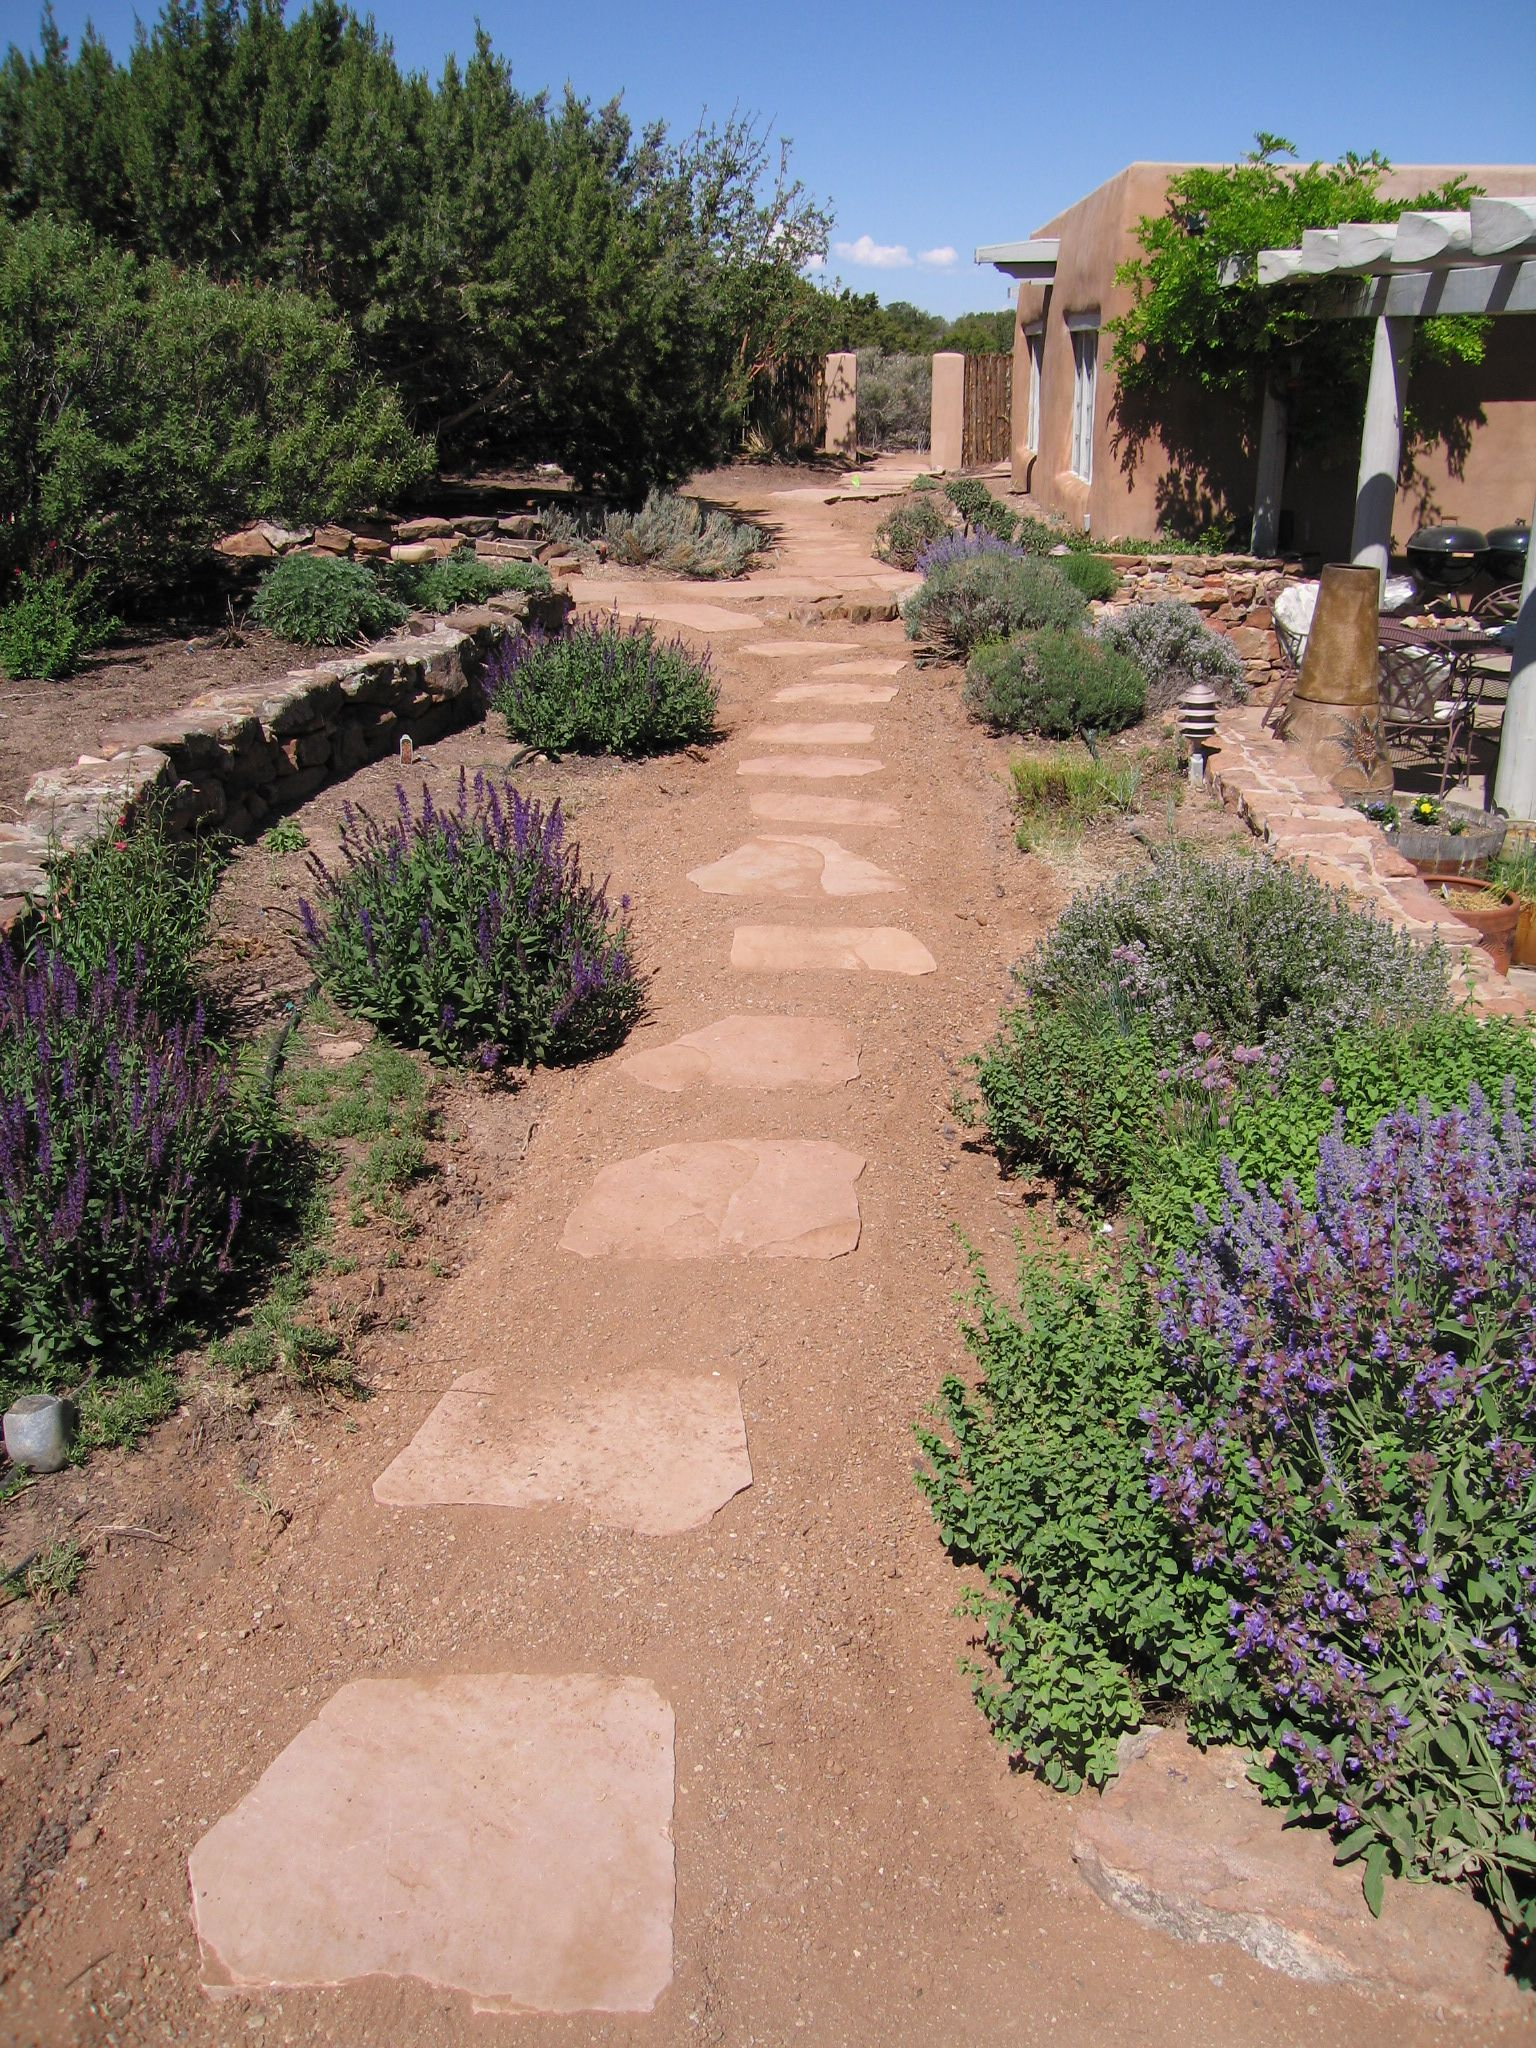 Xeriscape images - great for brainstorming for how you'd ... on Xeriscape Yard Ideas id=18882